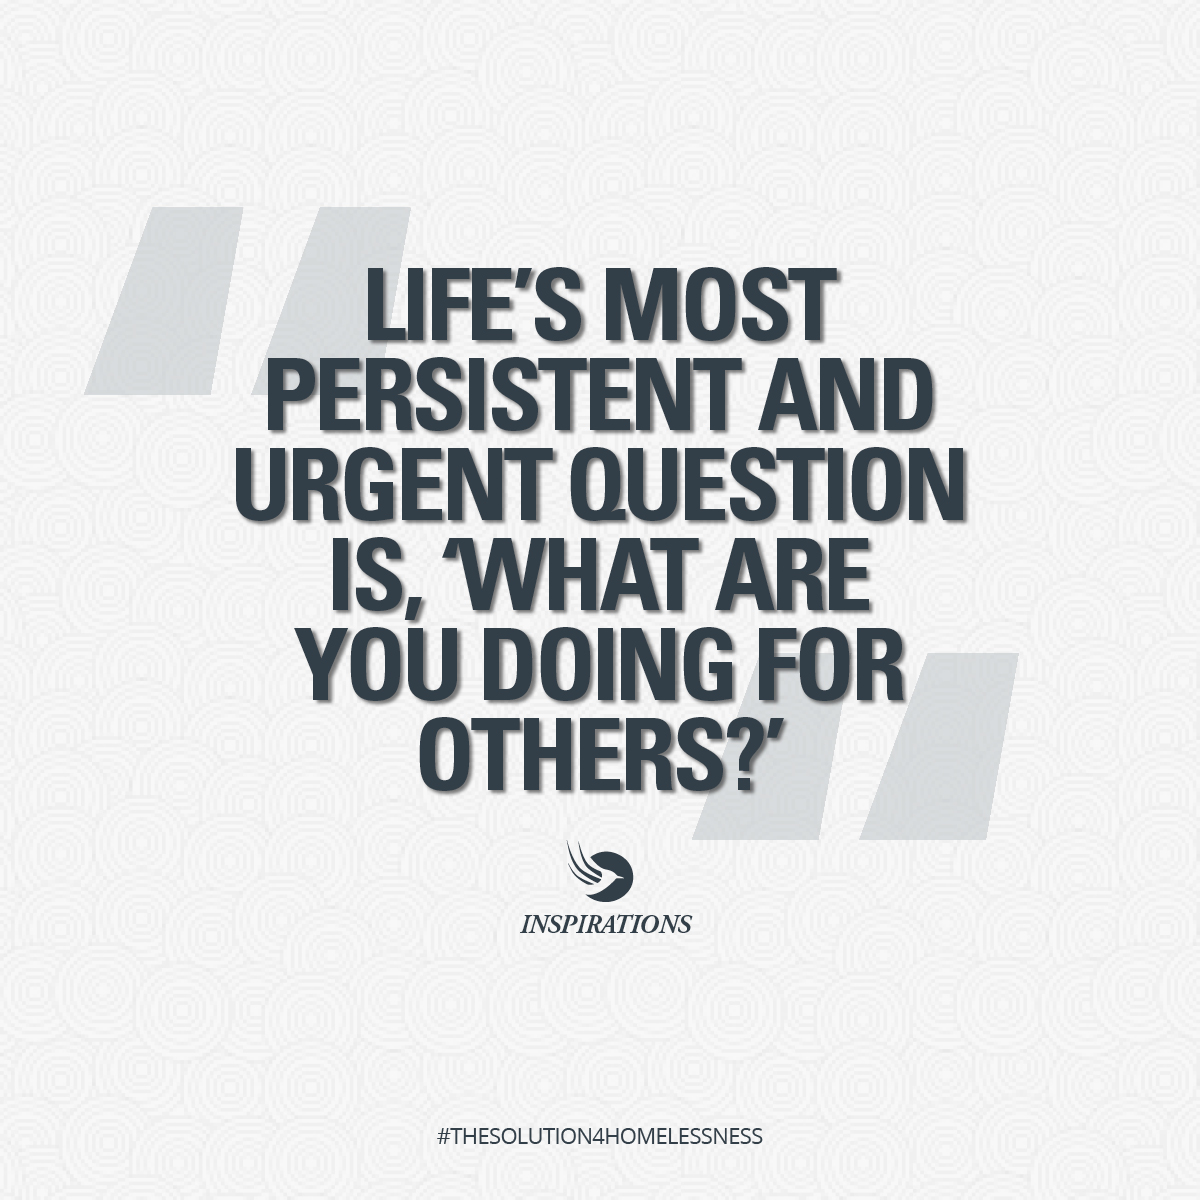 Life's most persistent and urgent question is, 'What are you doing for others?'